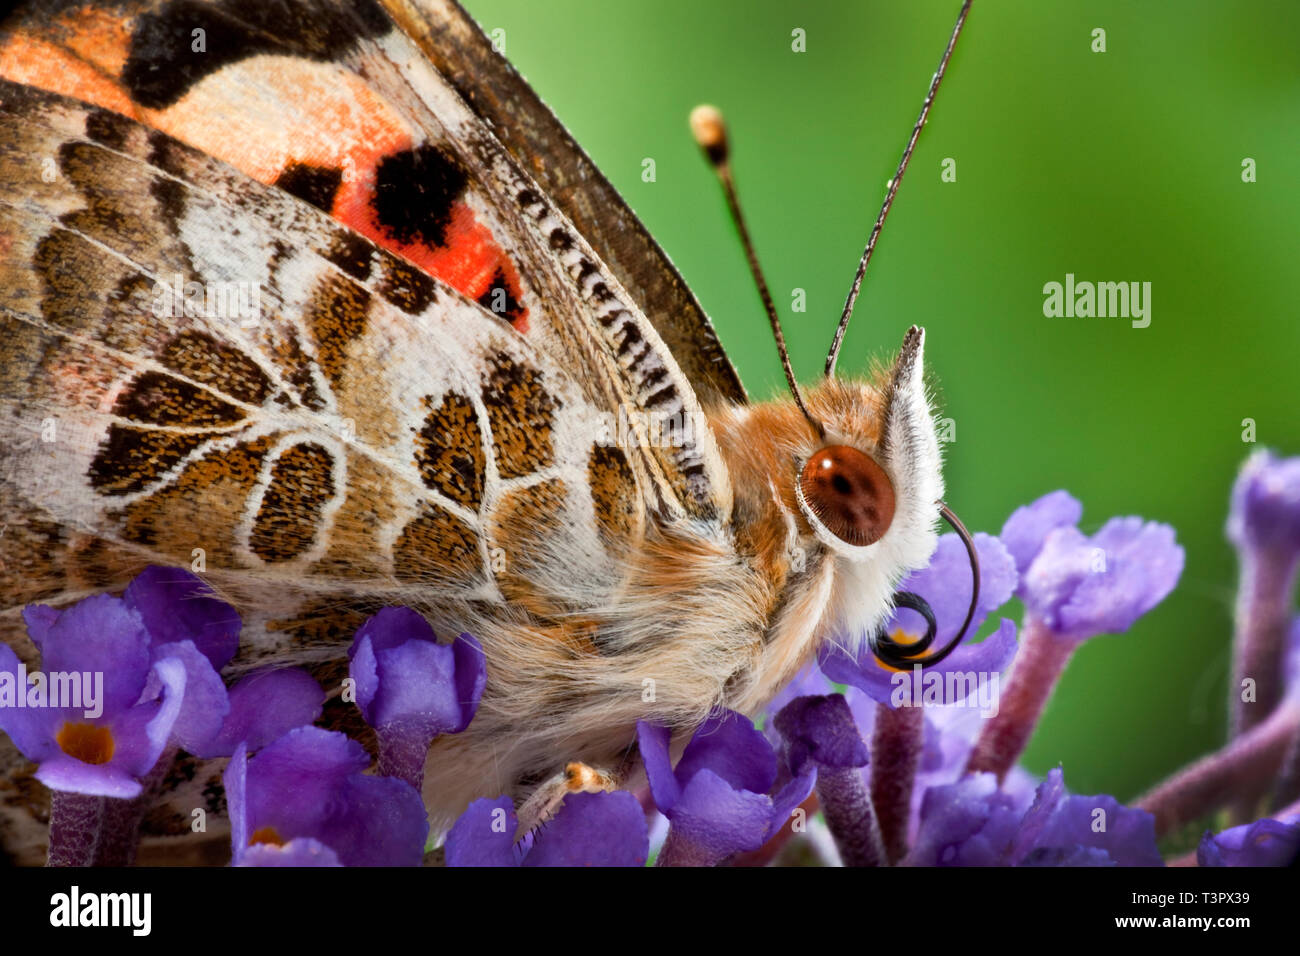 Macro close up of a small tortoiseshell butterfly  on budlea flowers. - Stock Image